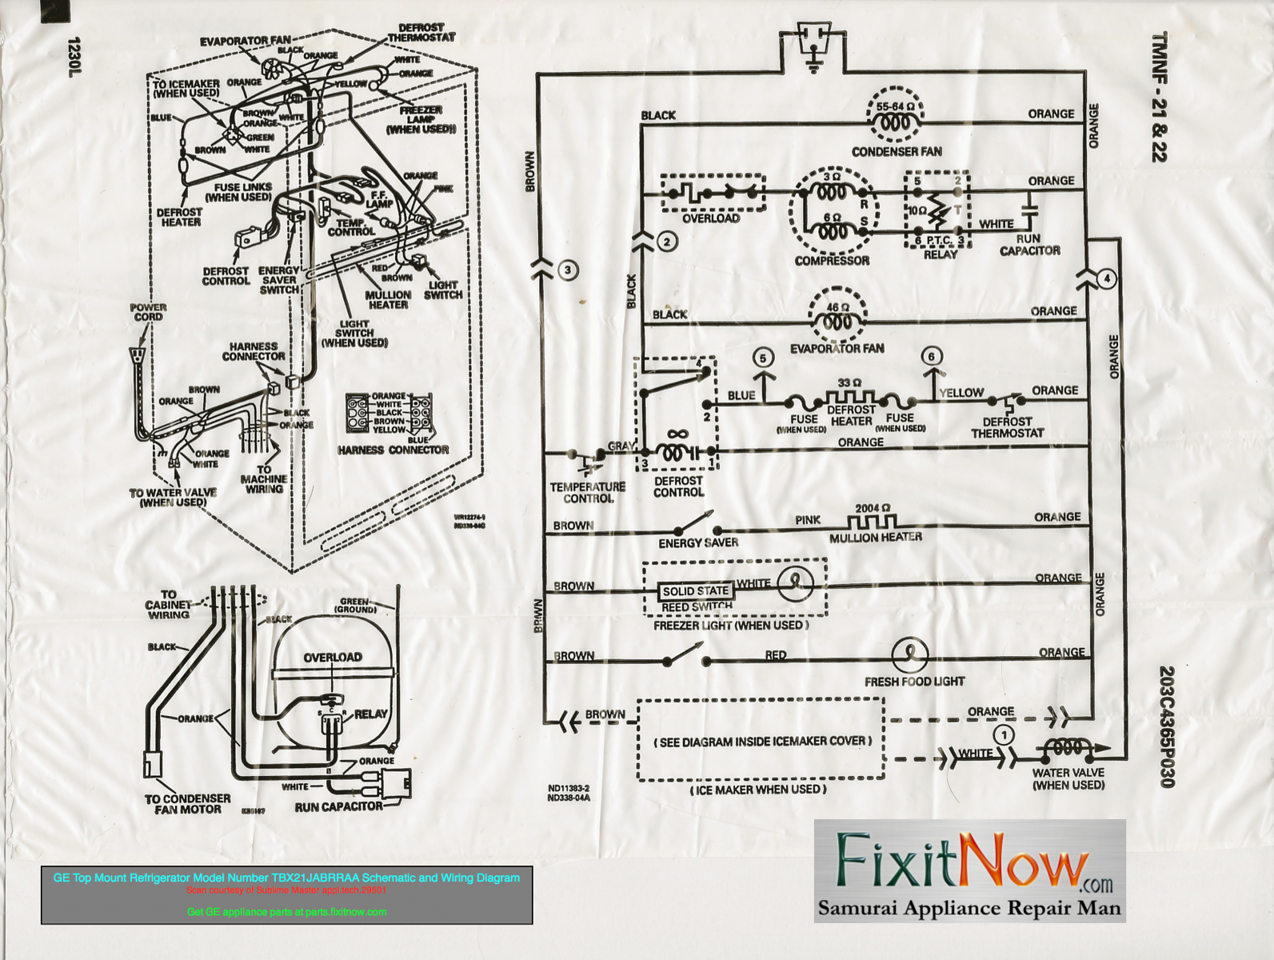 wiring diagrams and schematics appliantology Case 580K Electrical Schematic and electrical schematics #28 at electrical schematics standards